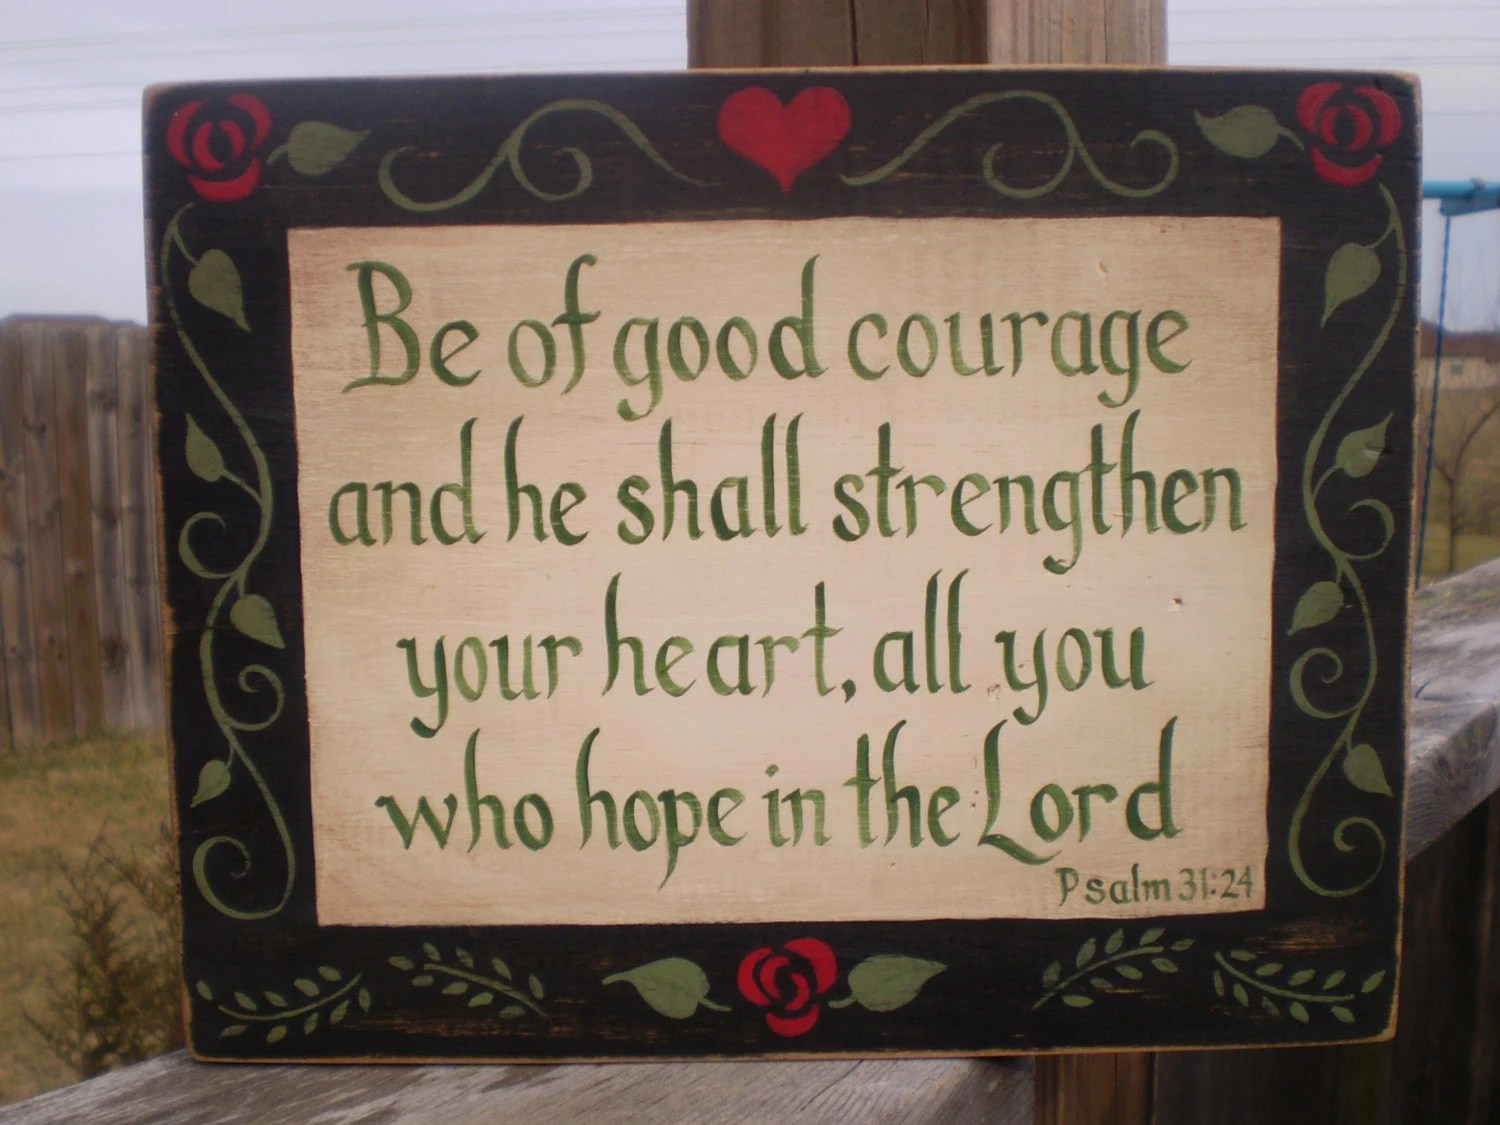 Heart and Flowers Framed Bible Verse Board Psalm 31/24